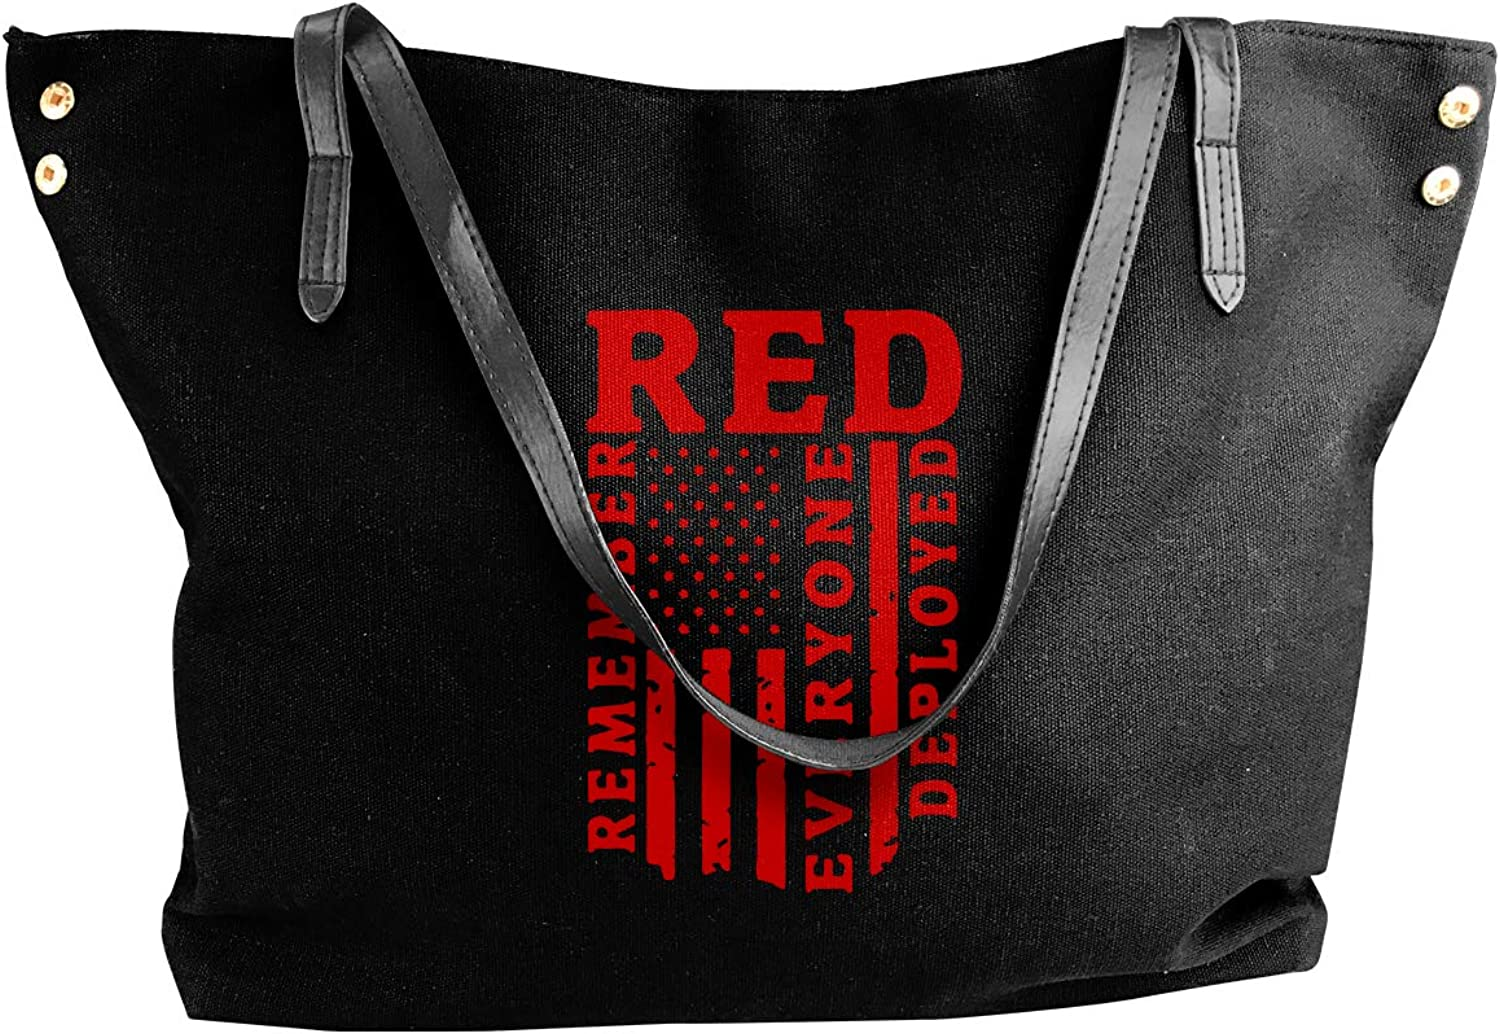 Remember Everyone Deployed Red Friday Women'S Casual Canvas Handbag For Travel Work Bag